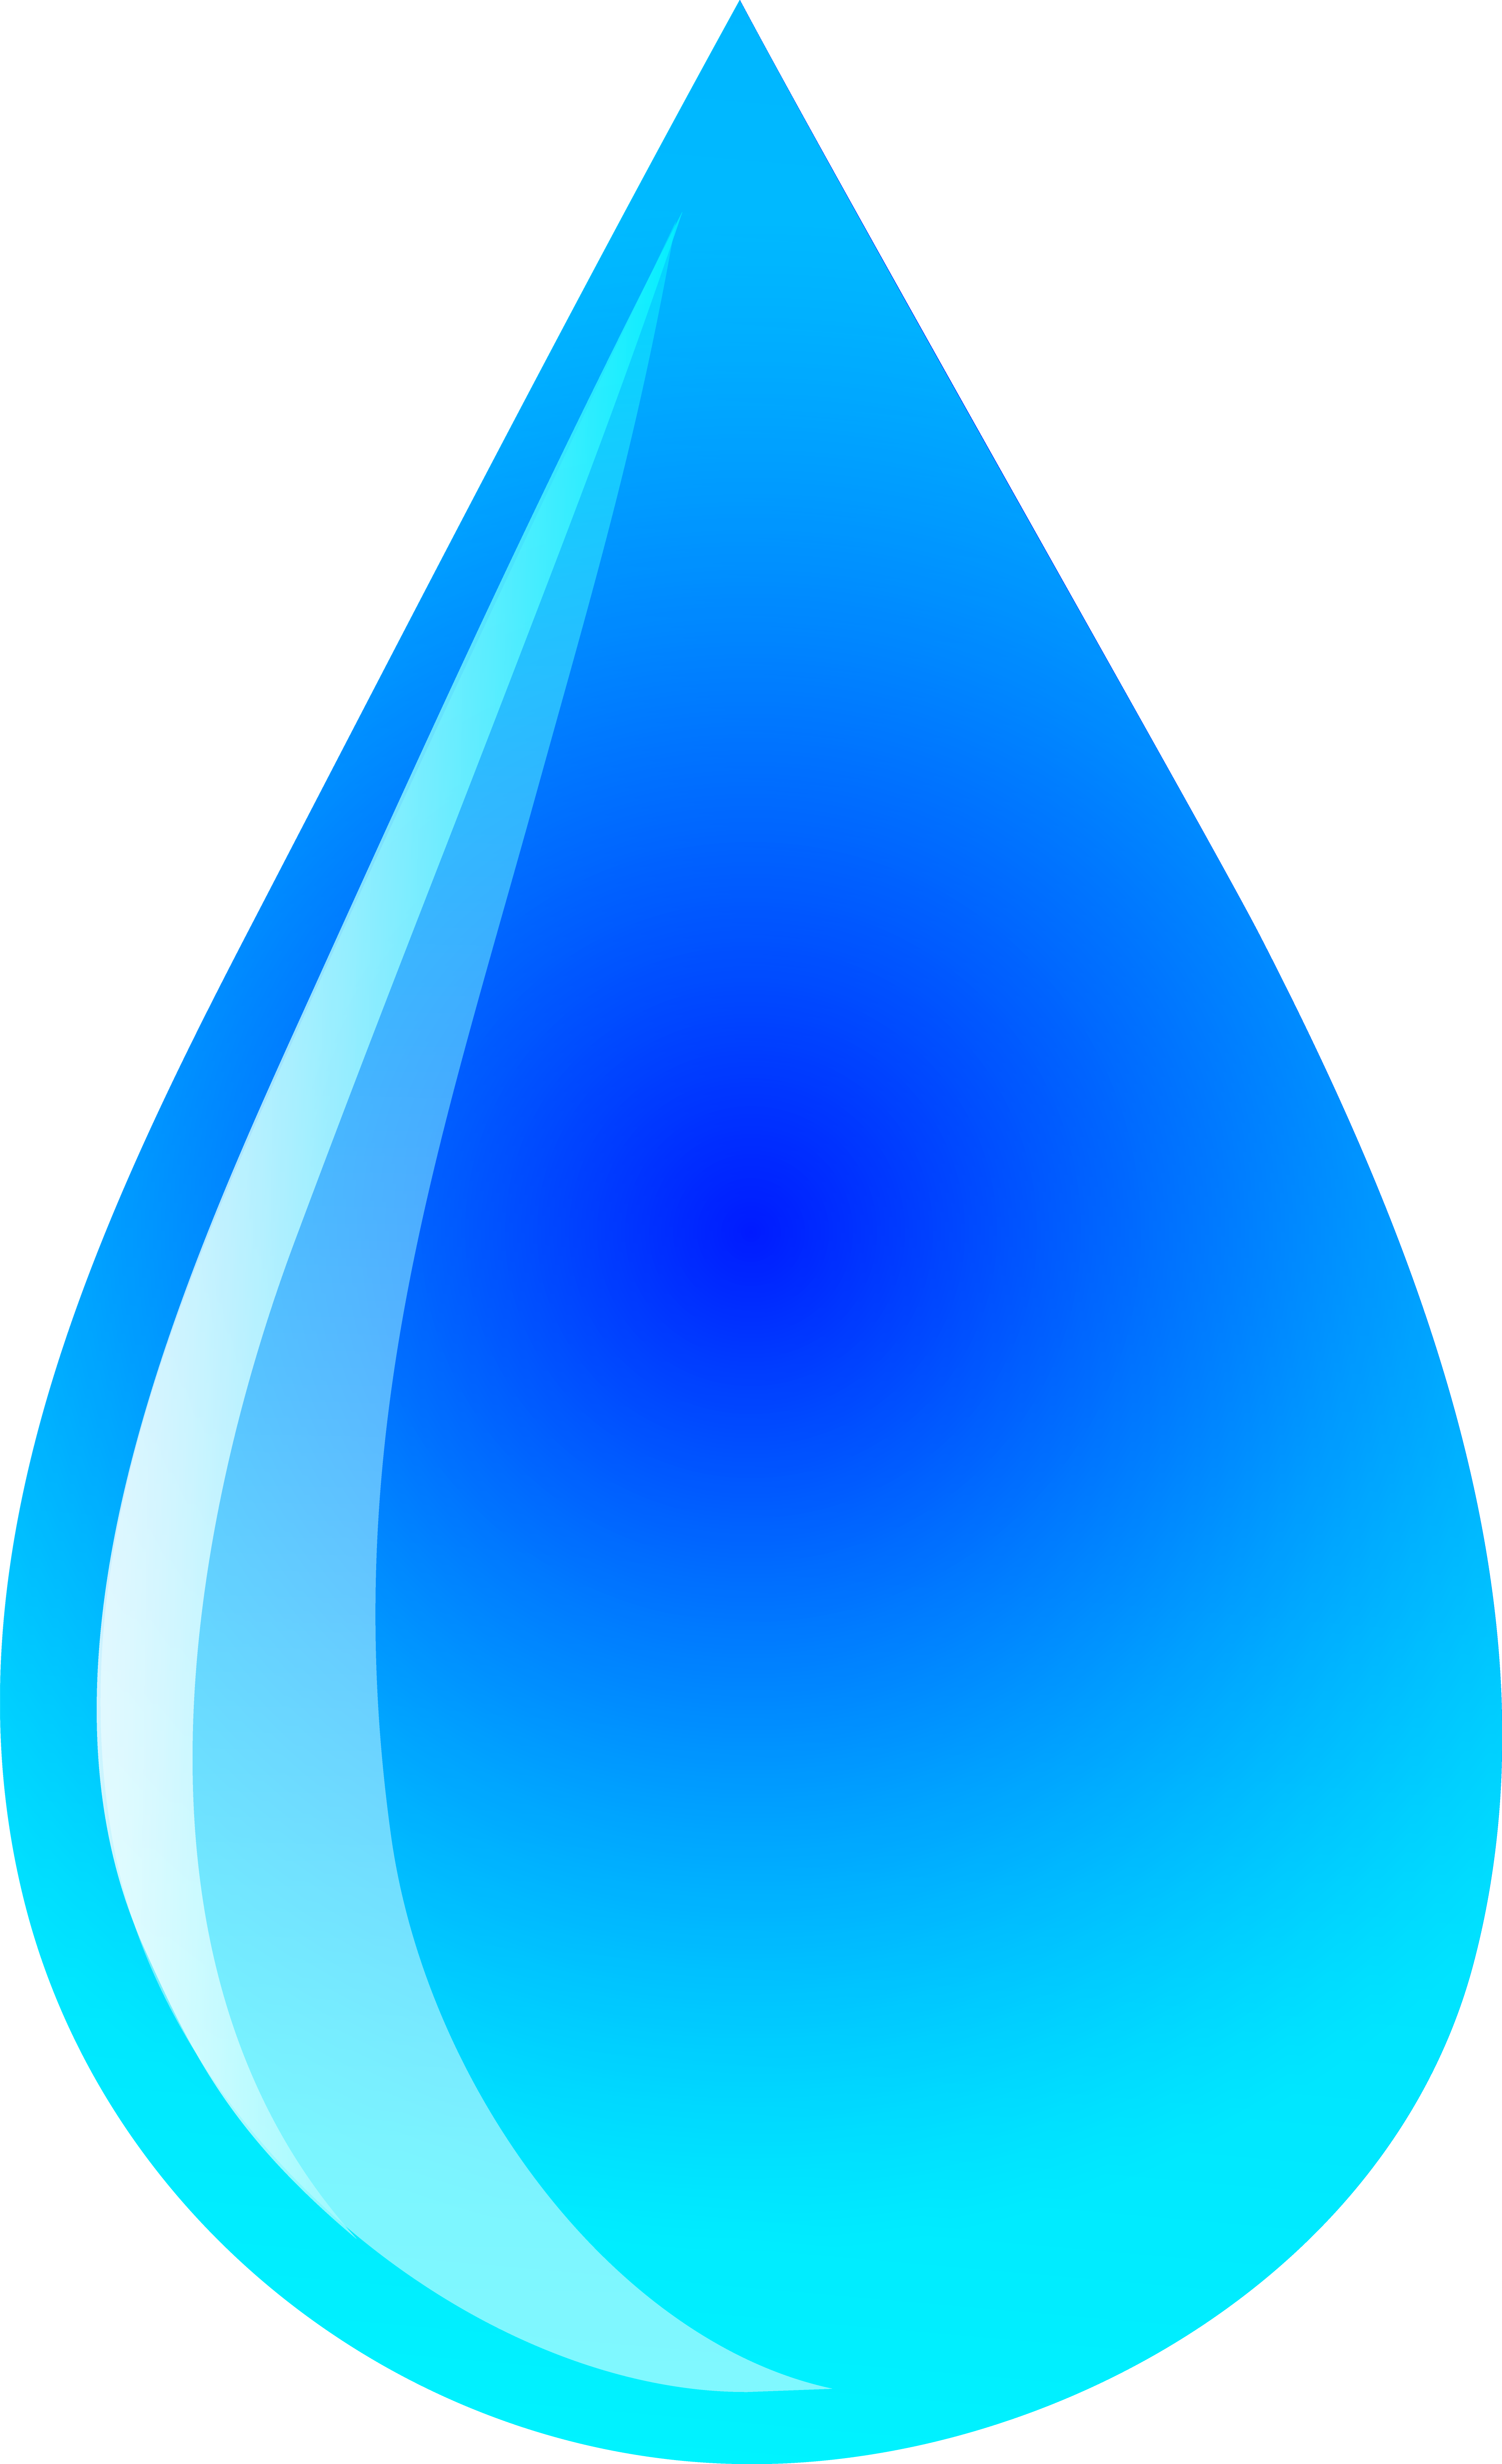 Line Drawing Water : Water drop line art clipart best